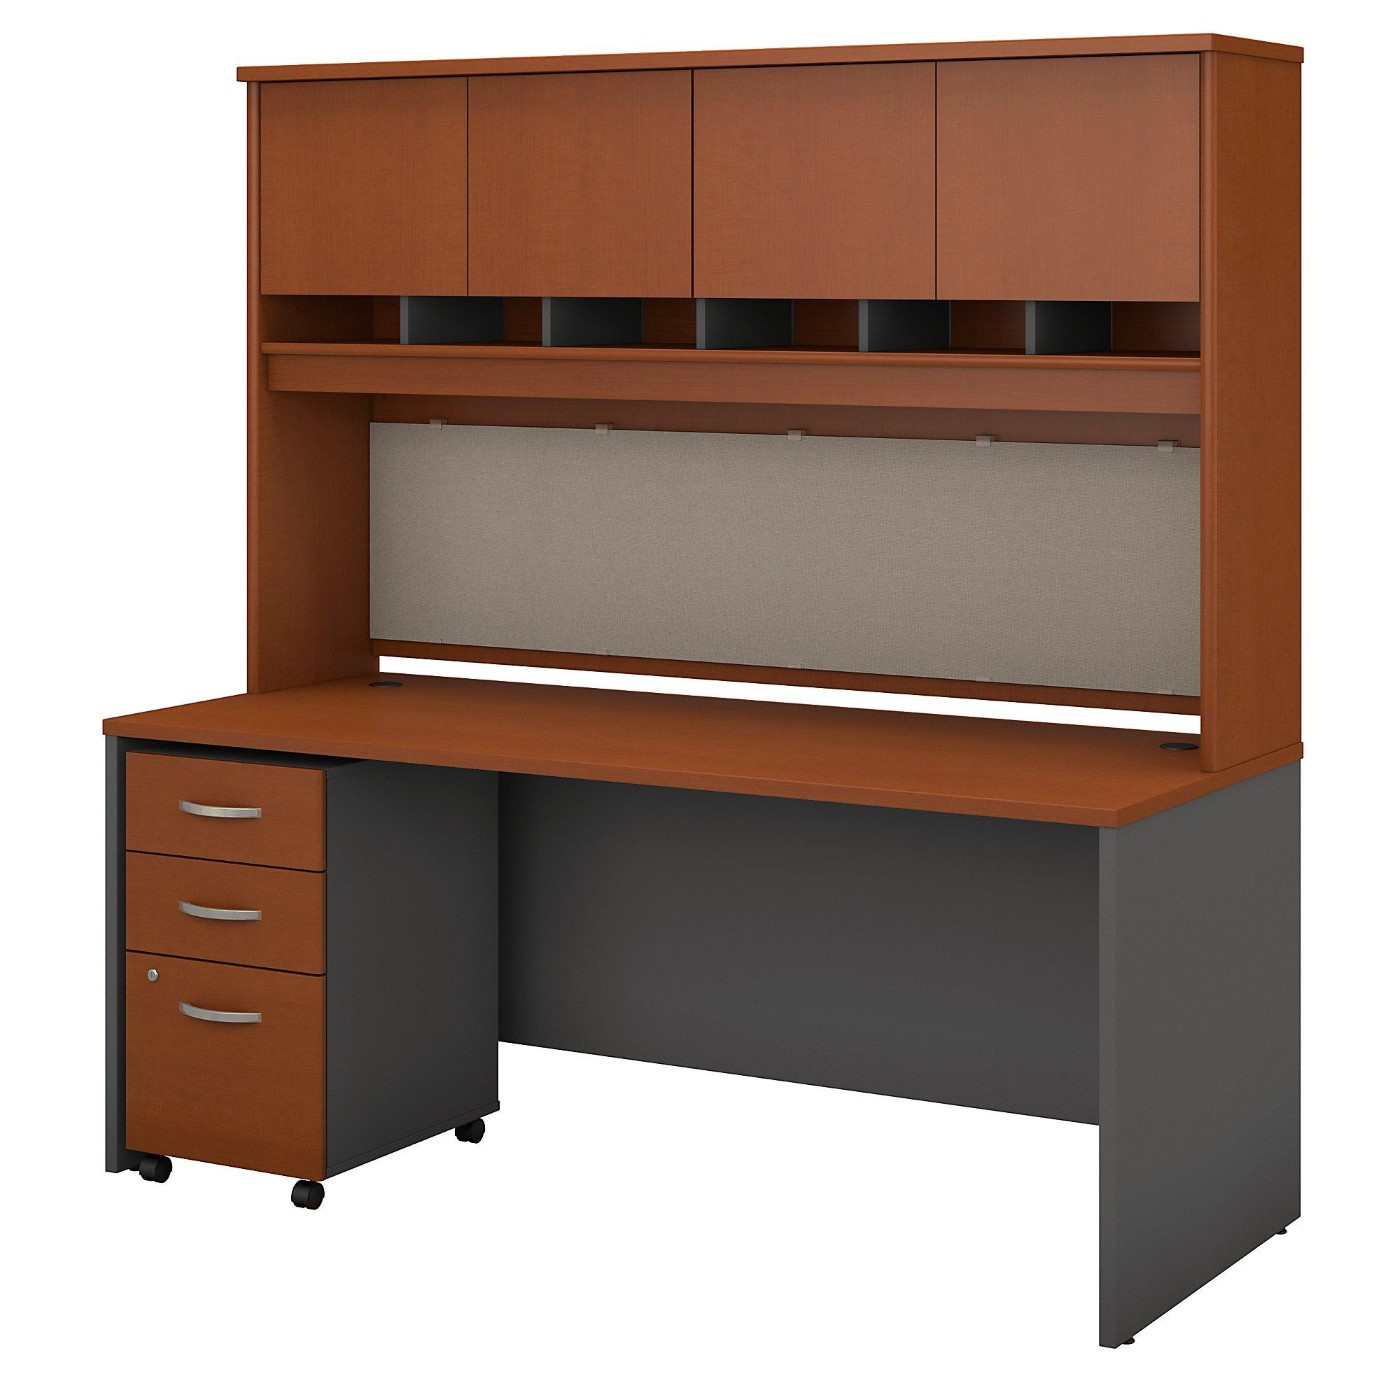 </b></font><b>BUSH BUSINESS FURNITURE SERIES C 72W X 30D OFFICE DESK WITH HUTCH AND MOBILE FILE CABINET. FREE SHIPPING</b></font>  VIDEO BELOW. </b></font></b>